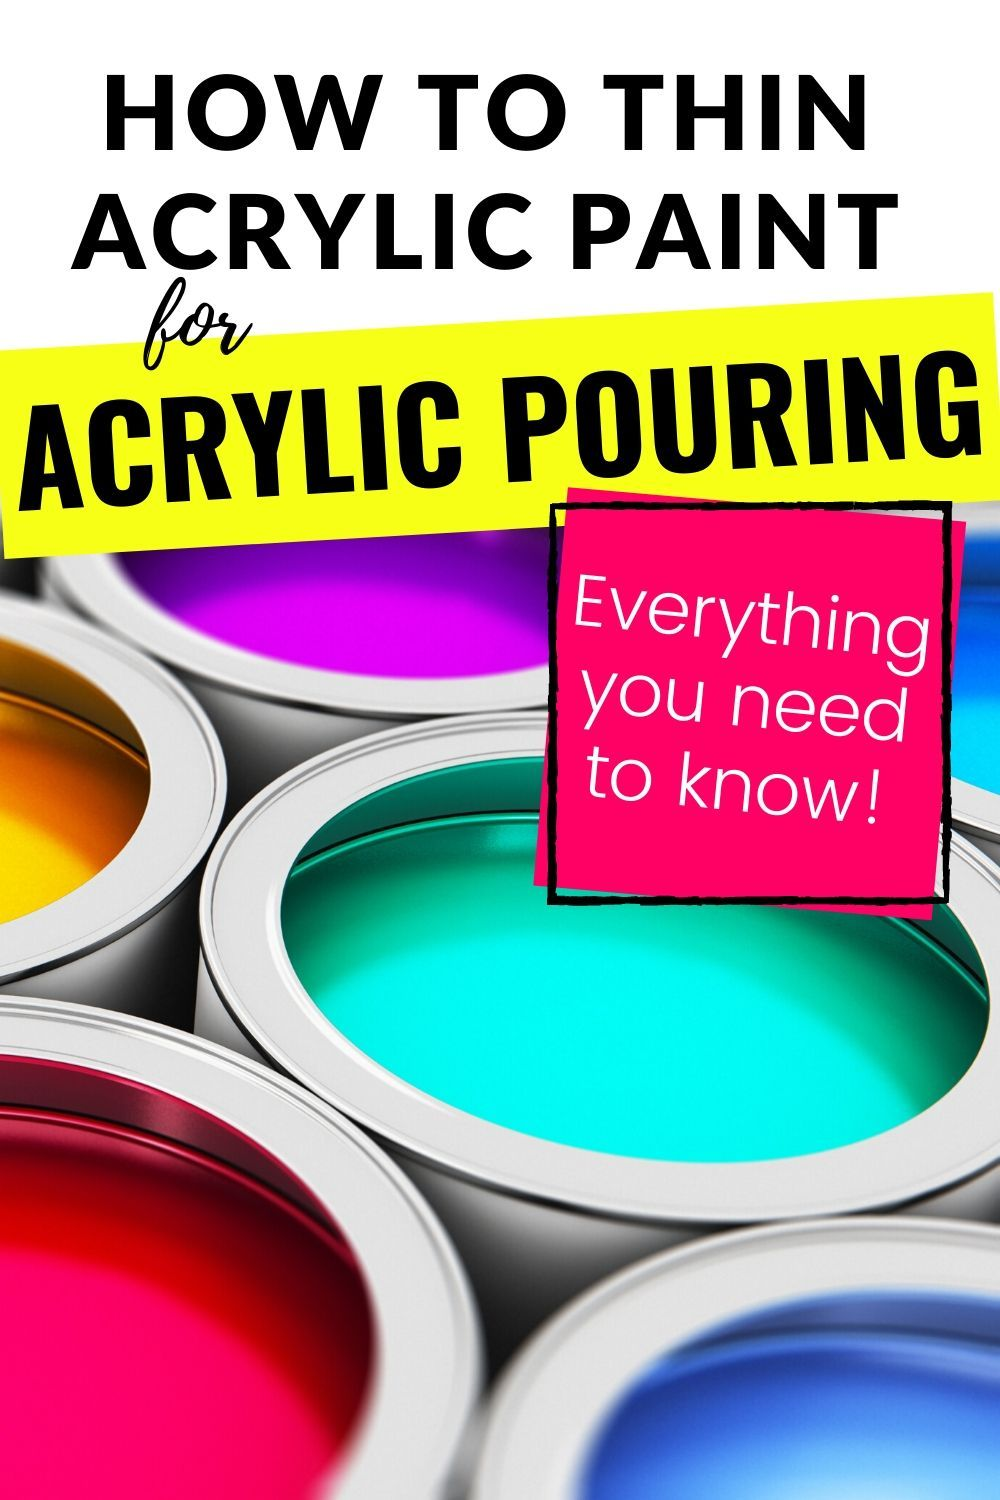 How To Thin Acrylic Paint For Acrylic Pouring Everything You Need To Know Acrylic Pouring Pouring Painting Acrylic Painting